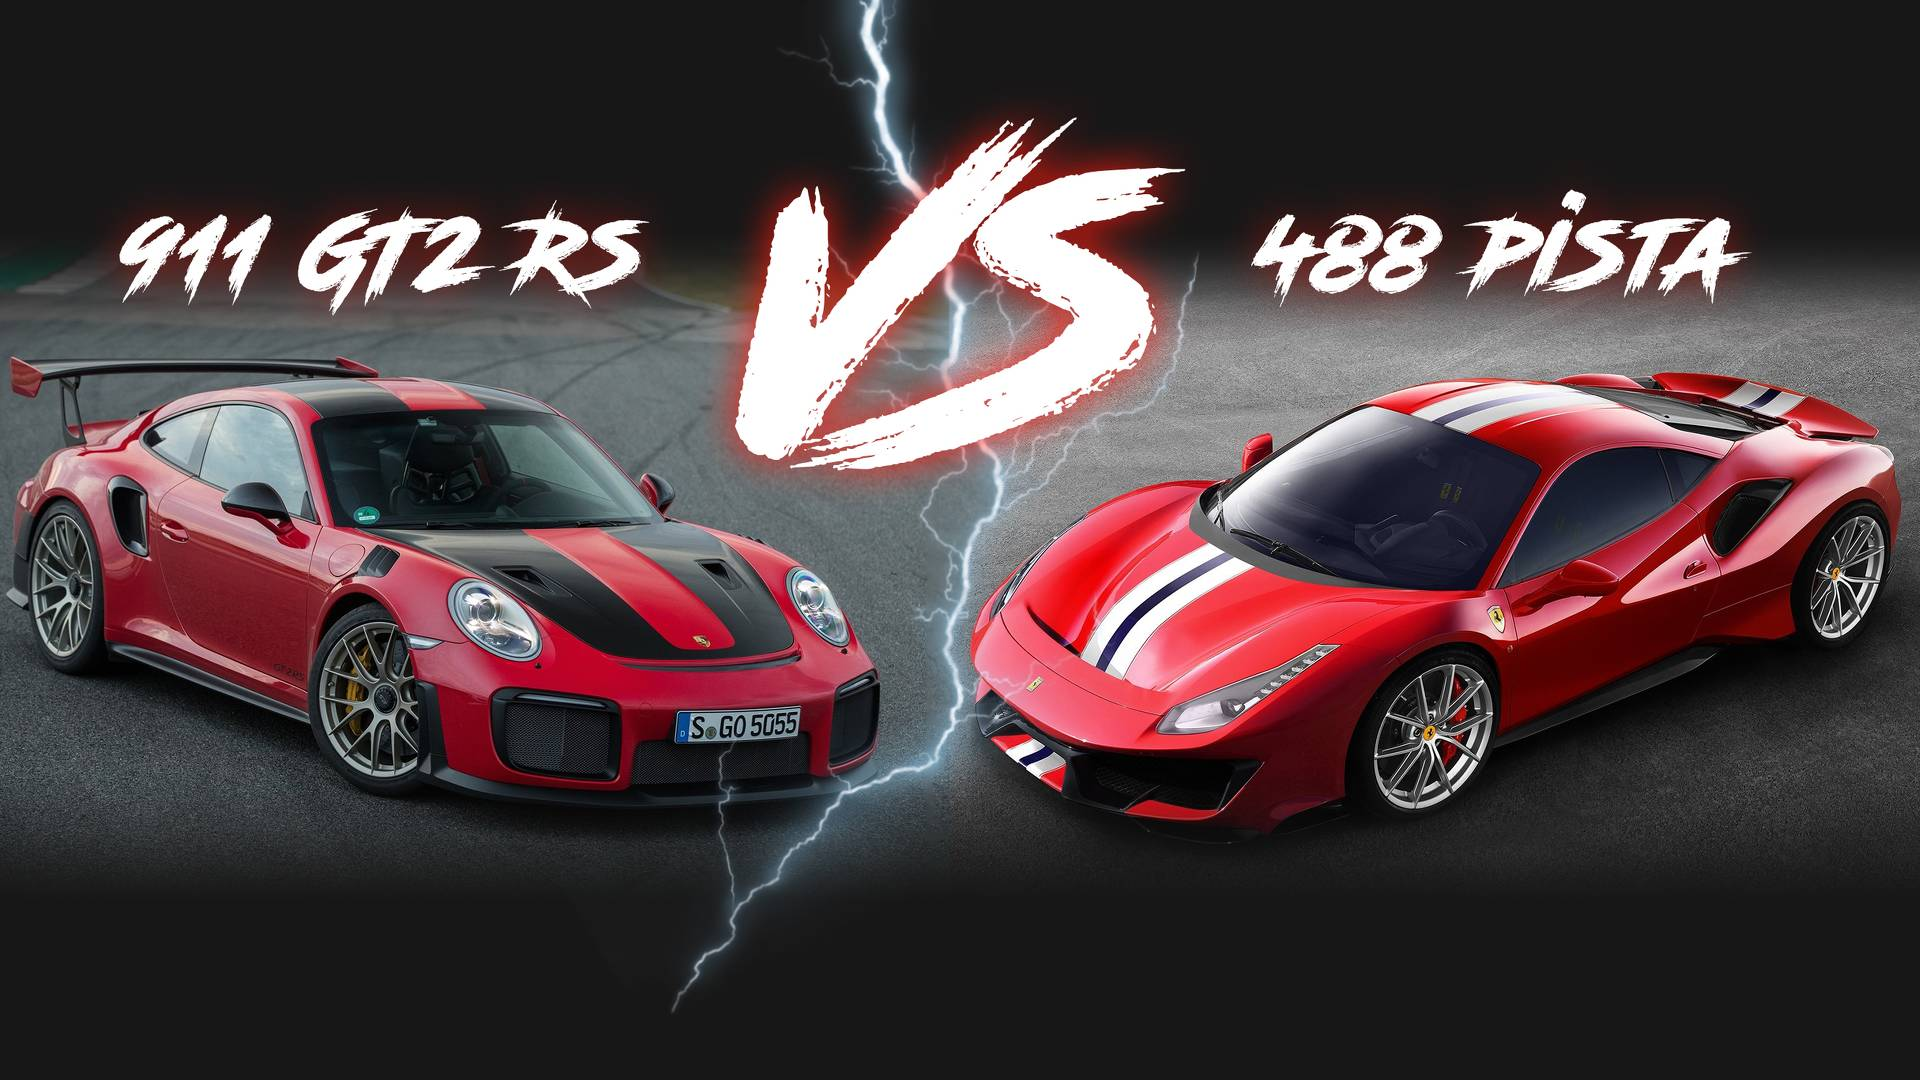 / Vs Ferrari 488 Pista Vs Porsche 911 Gt2 Rs Battle By The Numbers